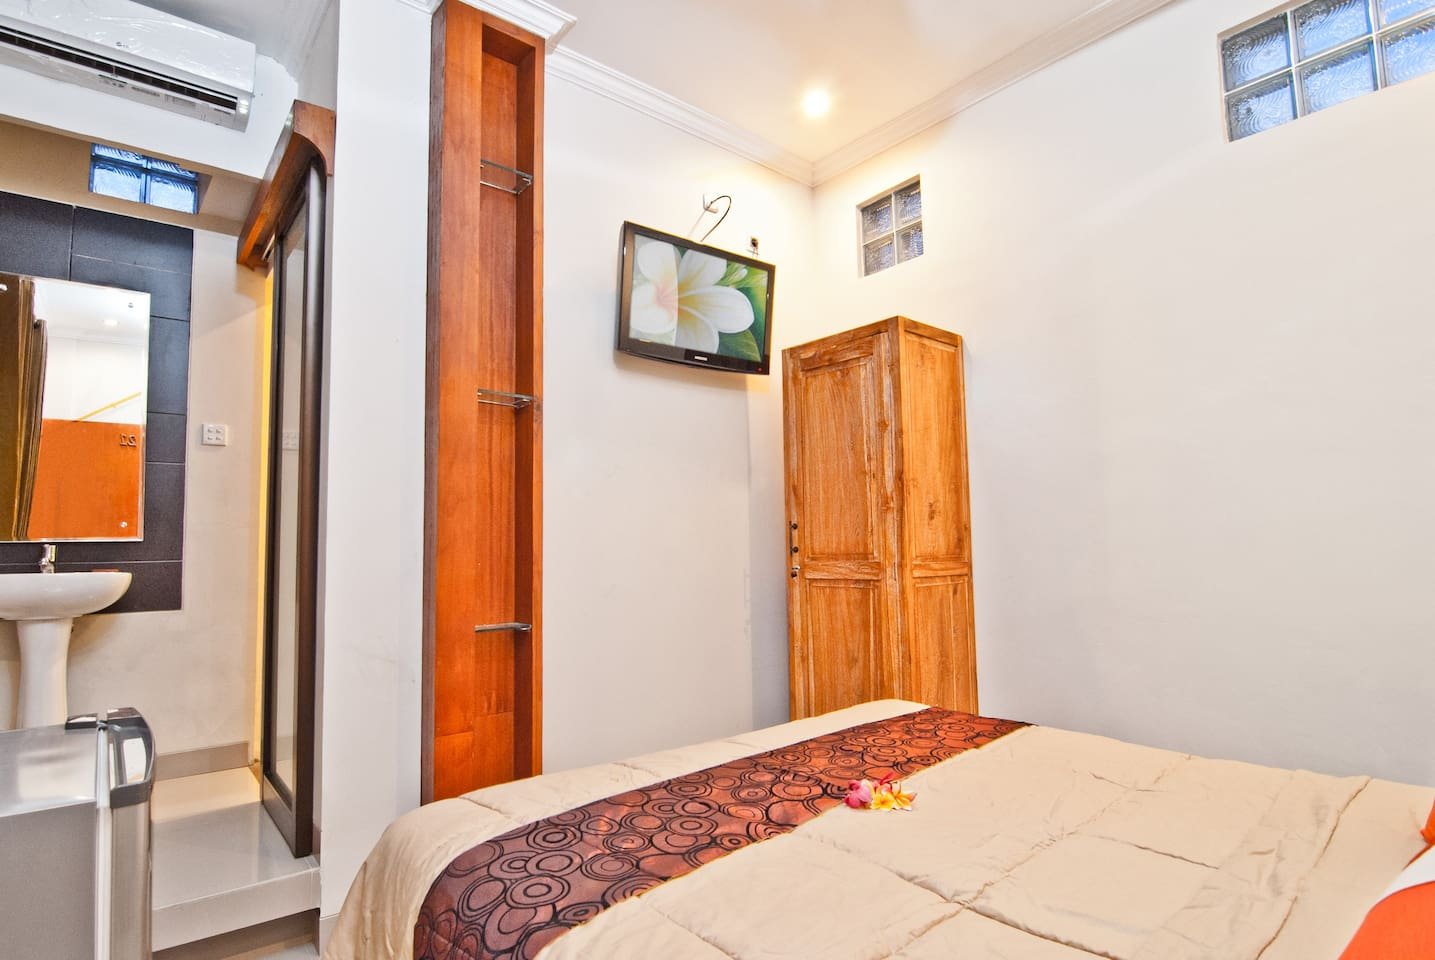 Deluxe room at Kuta EcoStay sufficient for 2 pax